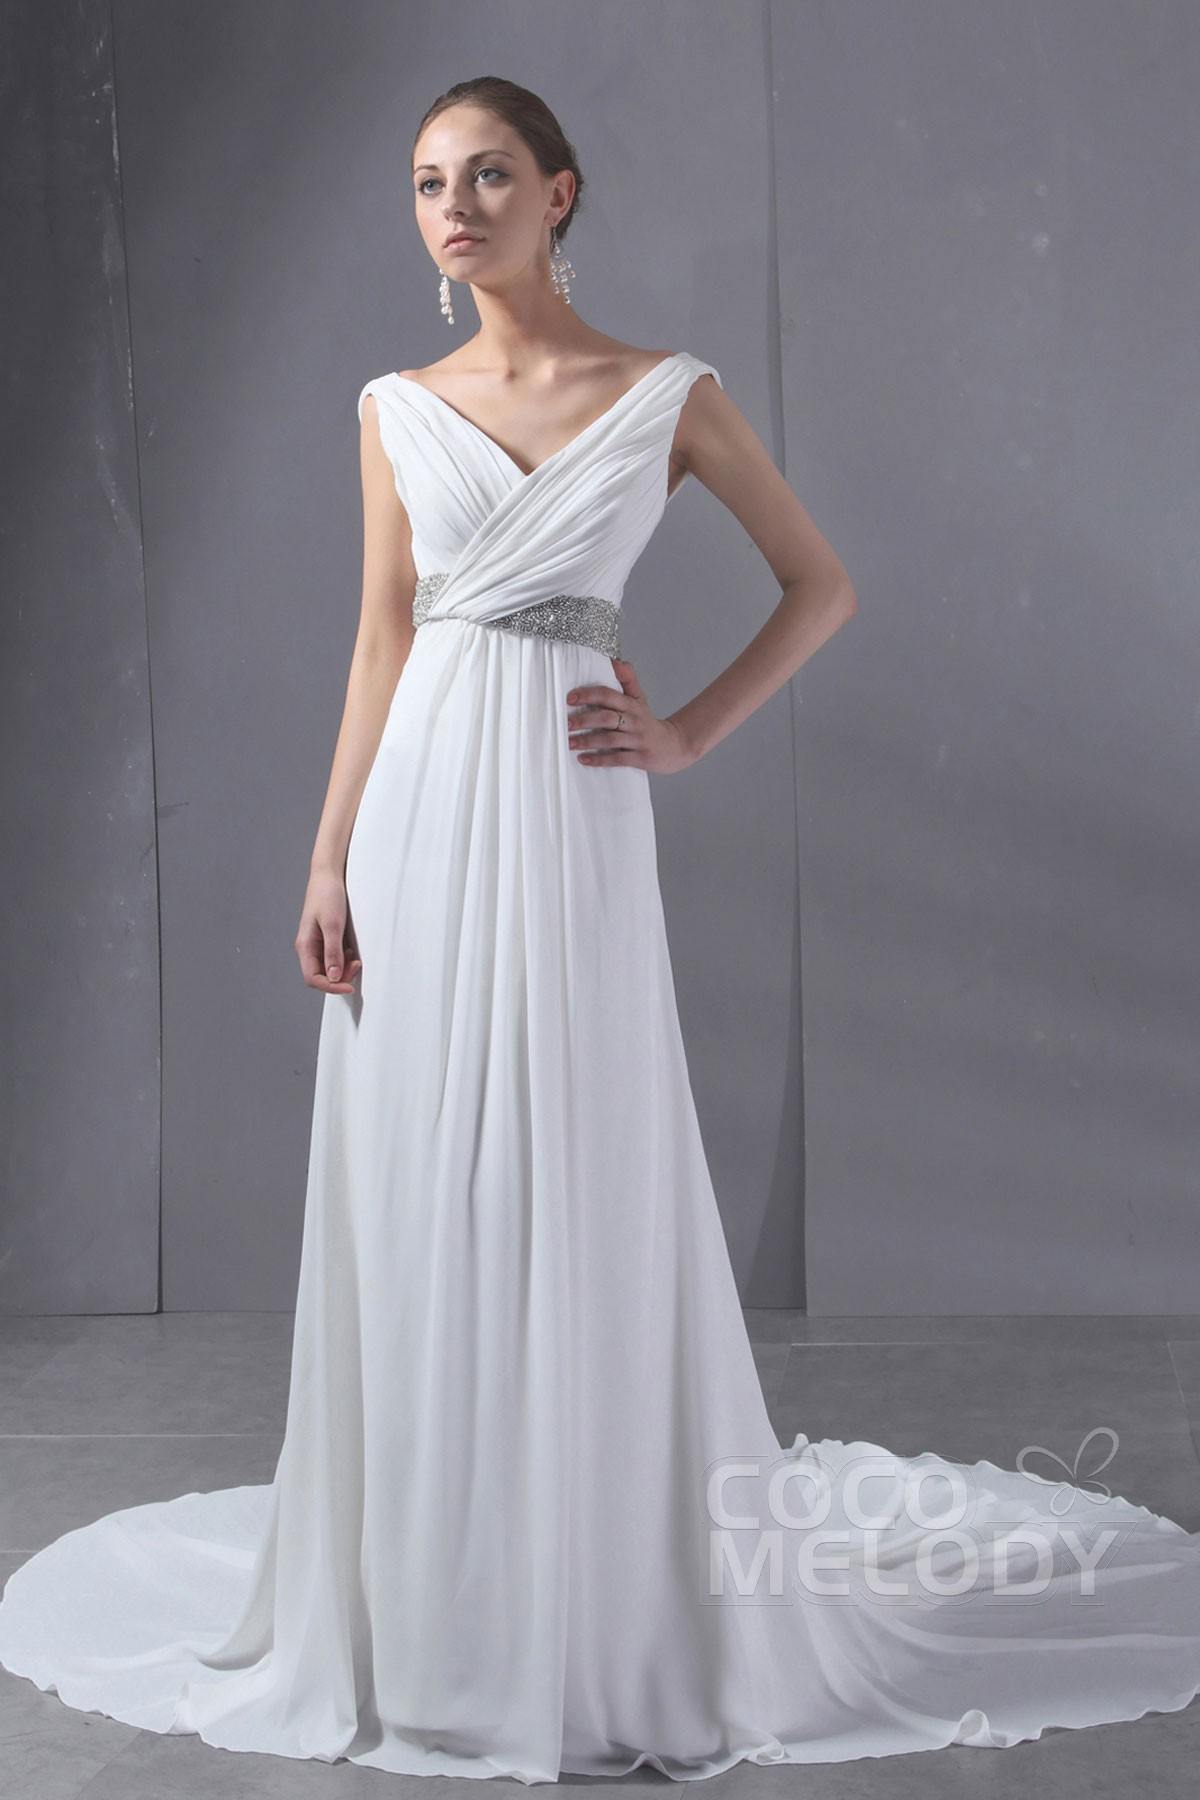 Simple Sheath Column V Neck Chapel Train Chiffon Wedding Dress CWLT130AA Good Ideas